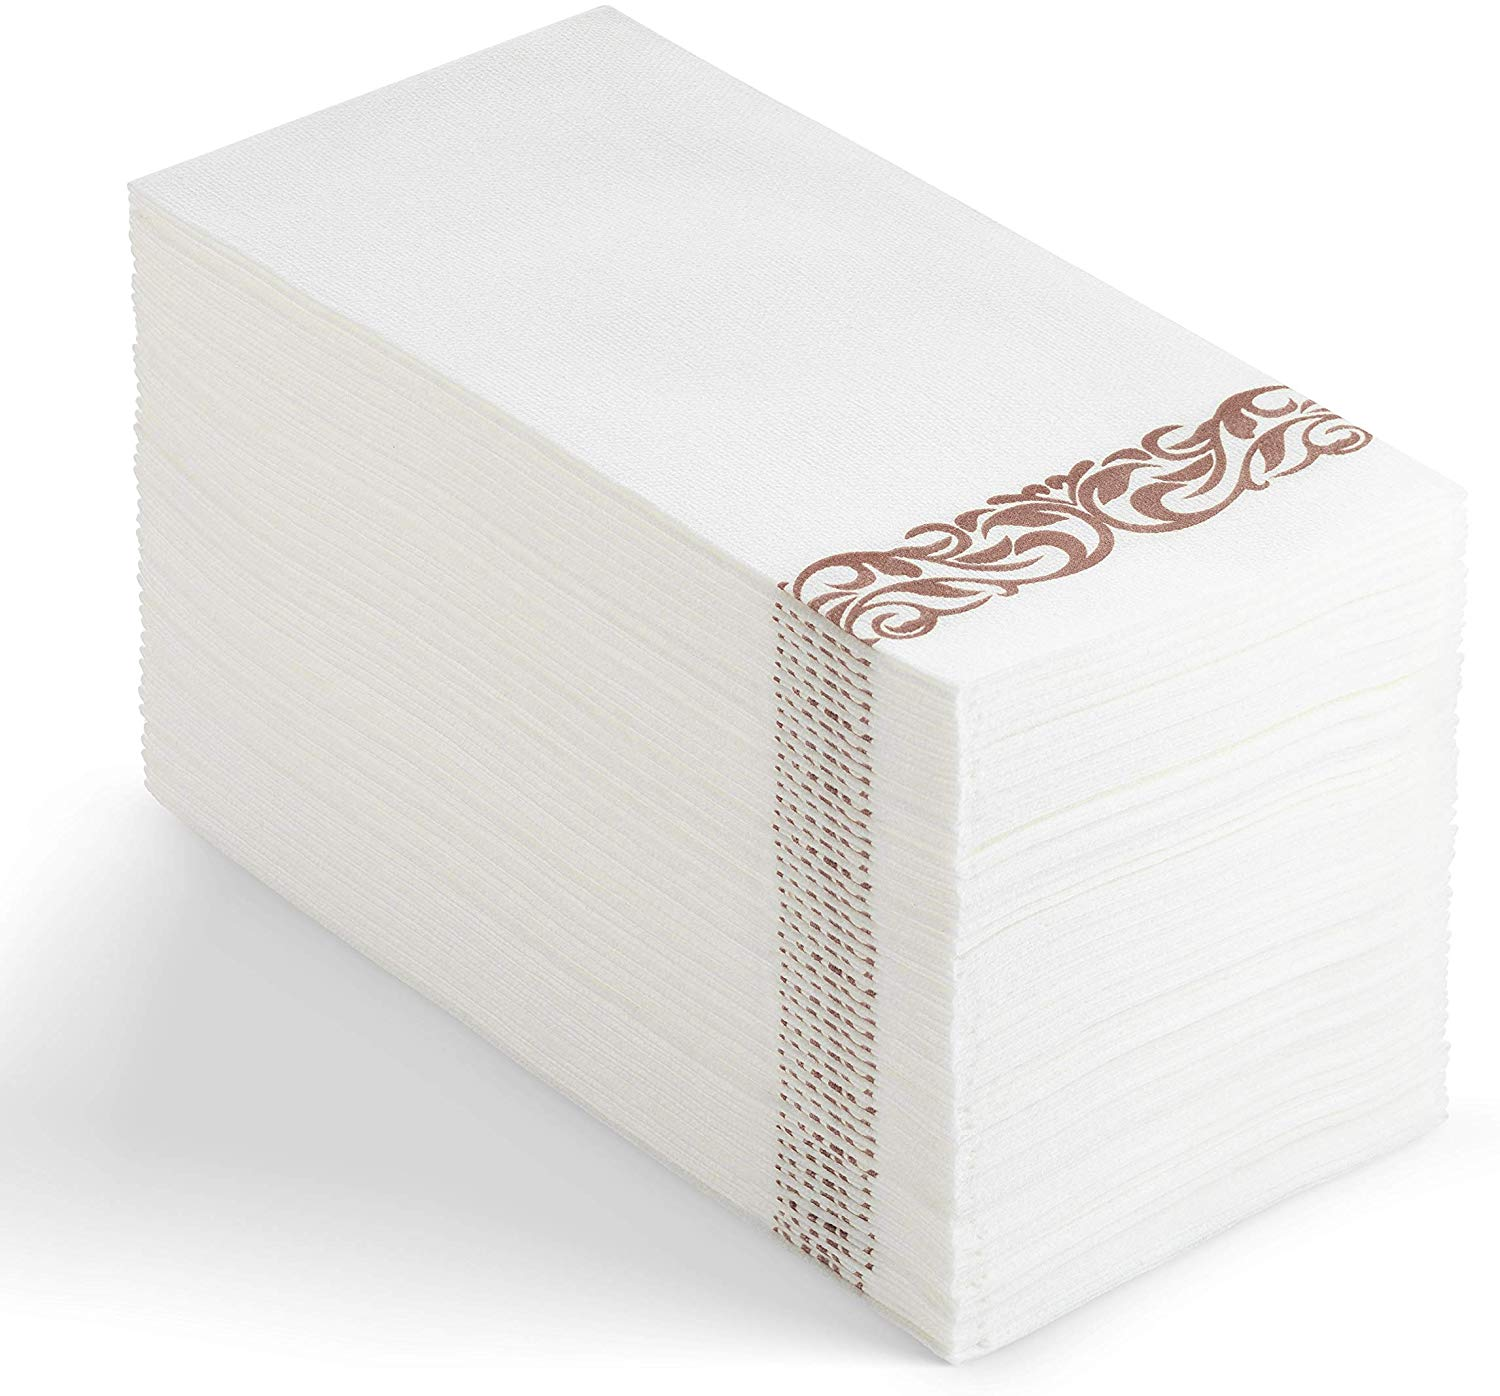 Weddings Dinners or Events White and Rose Gold Parties 100 Disposable Guest Towels Soft and Absorbent Linen-Feel Paper Hand Towels Durable Decorative Bathroom Hand Napkins Good for Kitchen